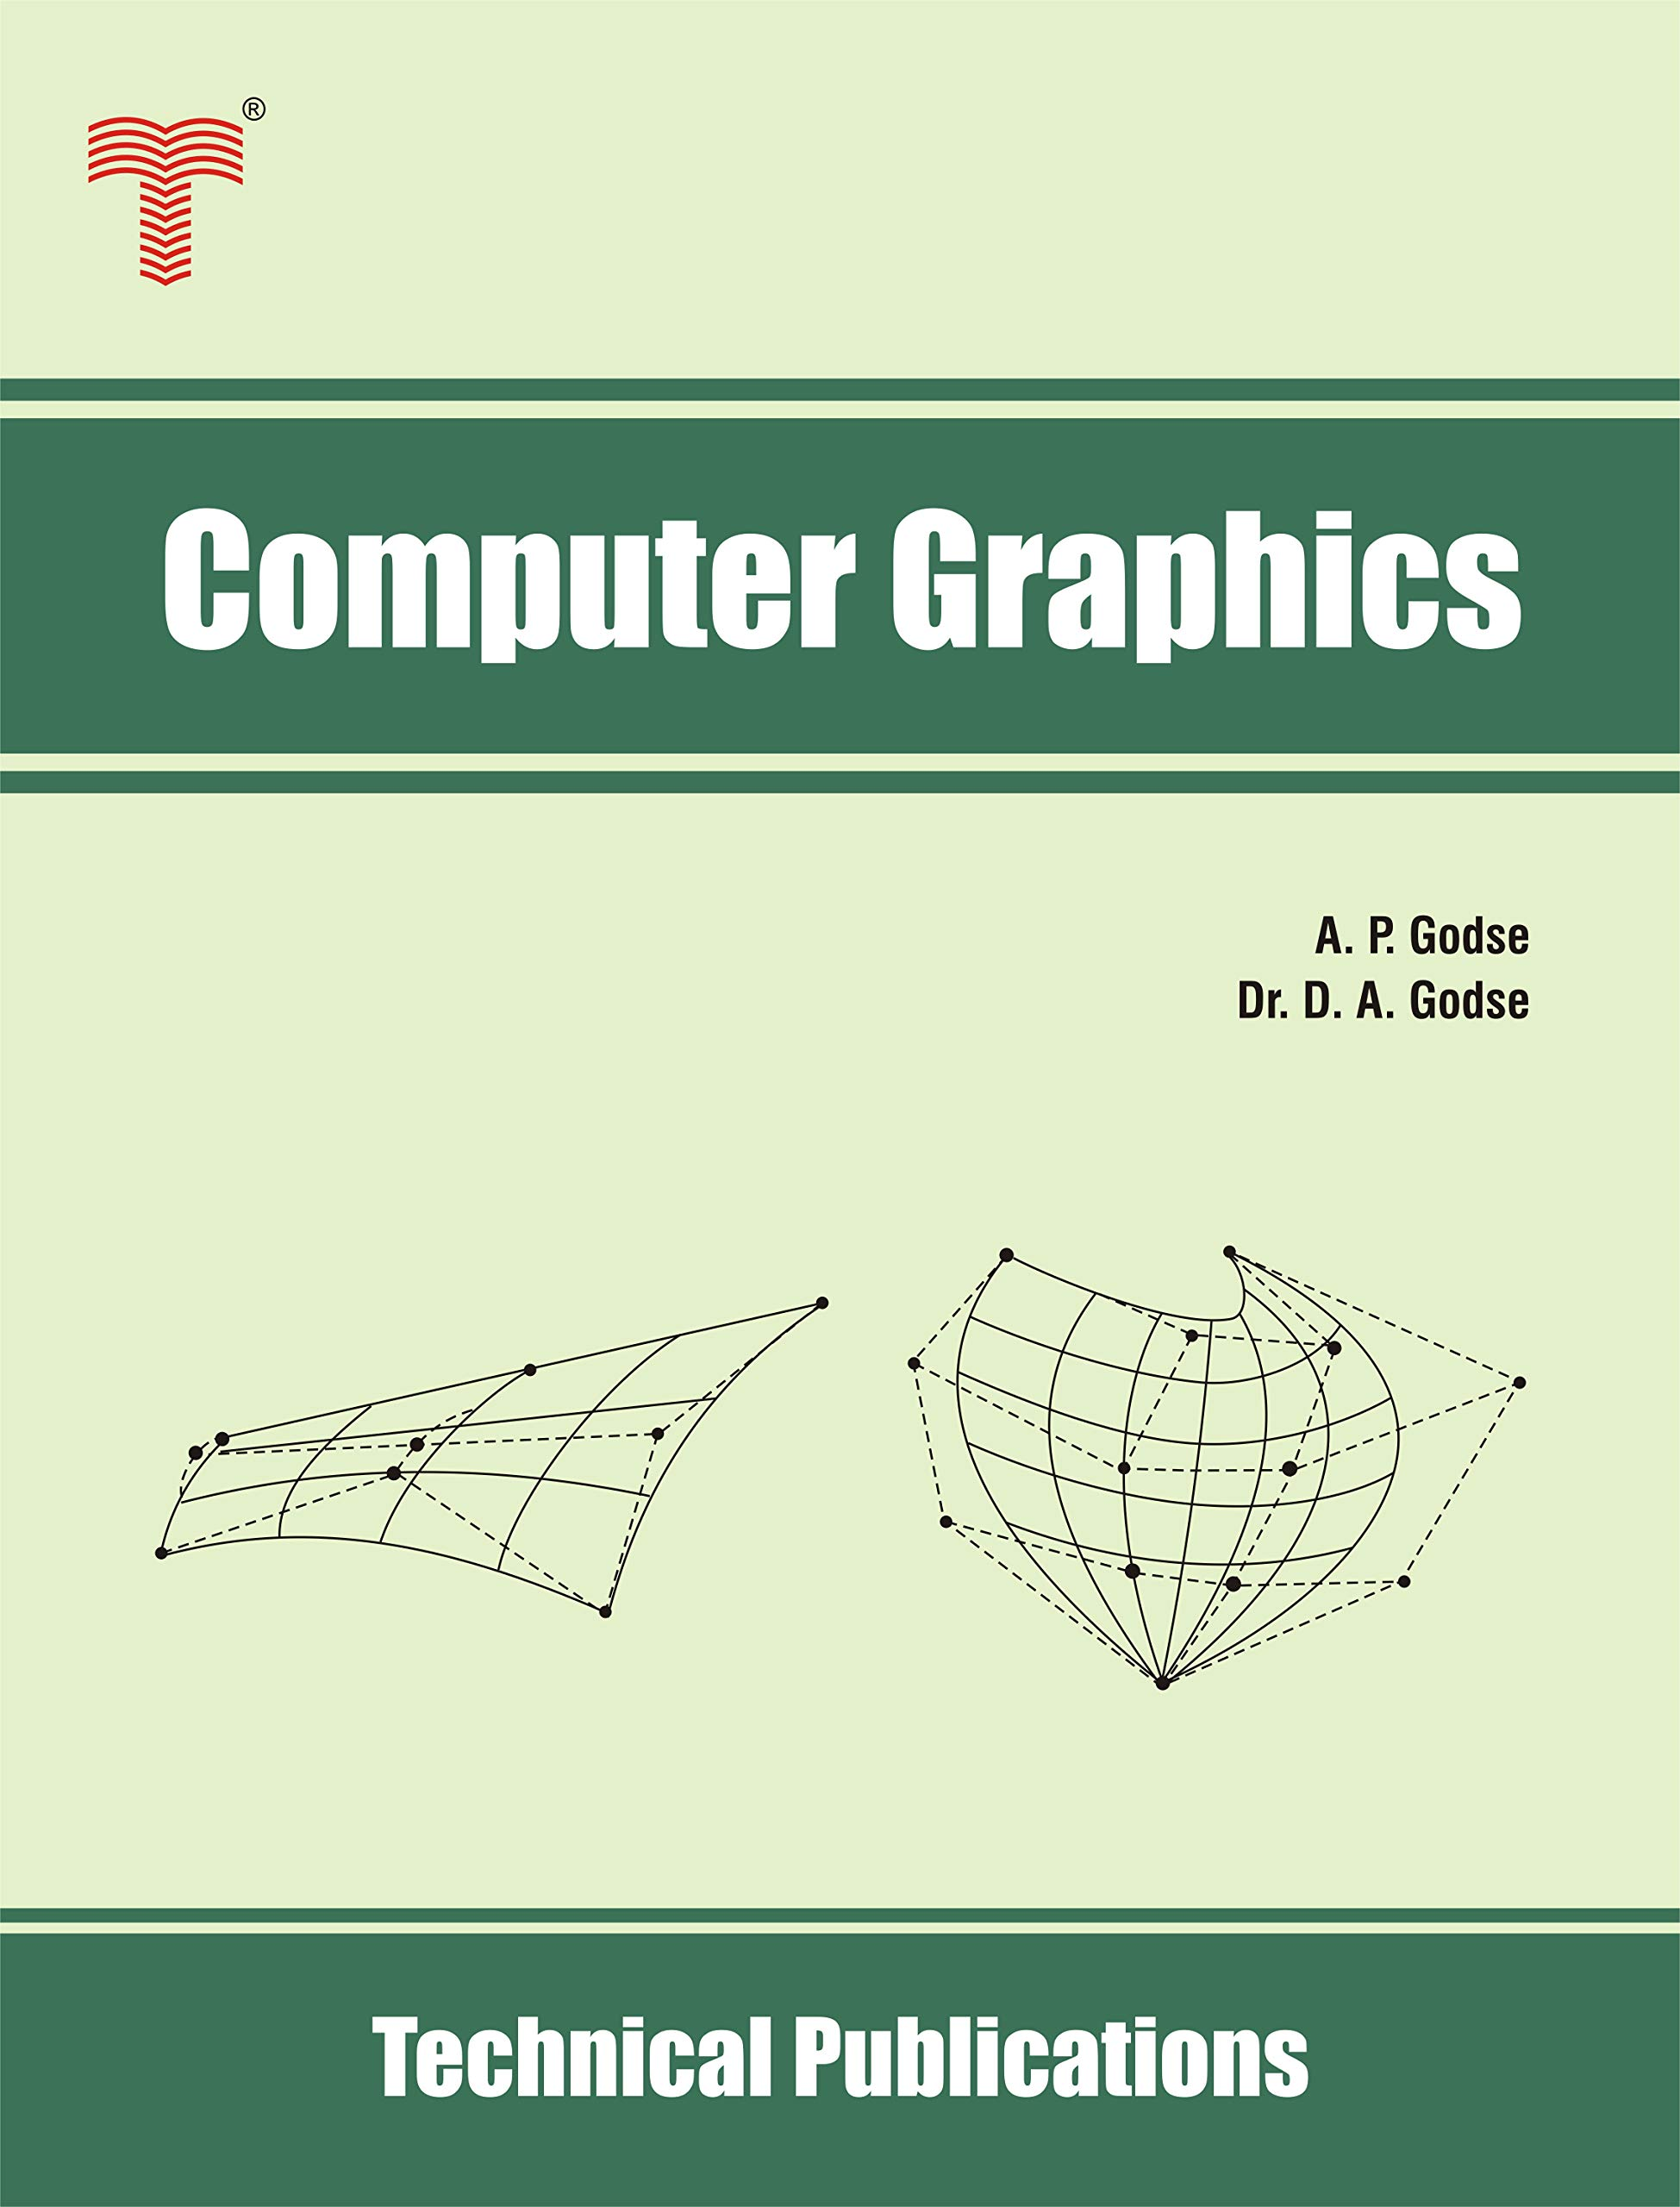 Computer Graphics: Concepts, Algorithms and Implementation using C and OpenGL